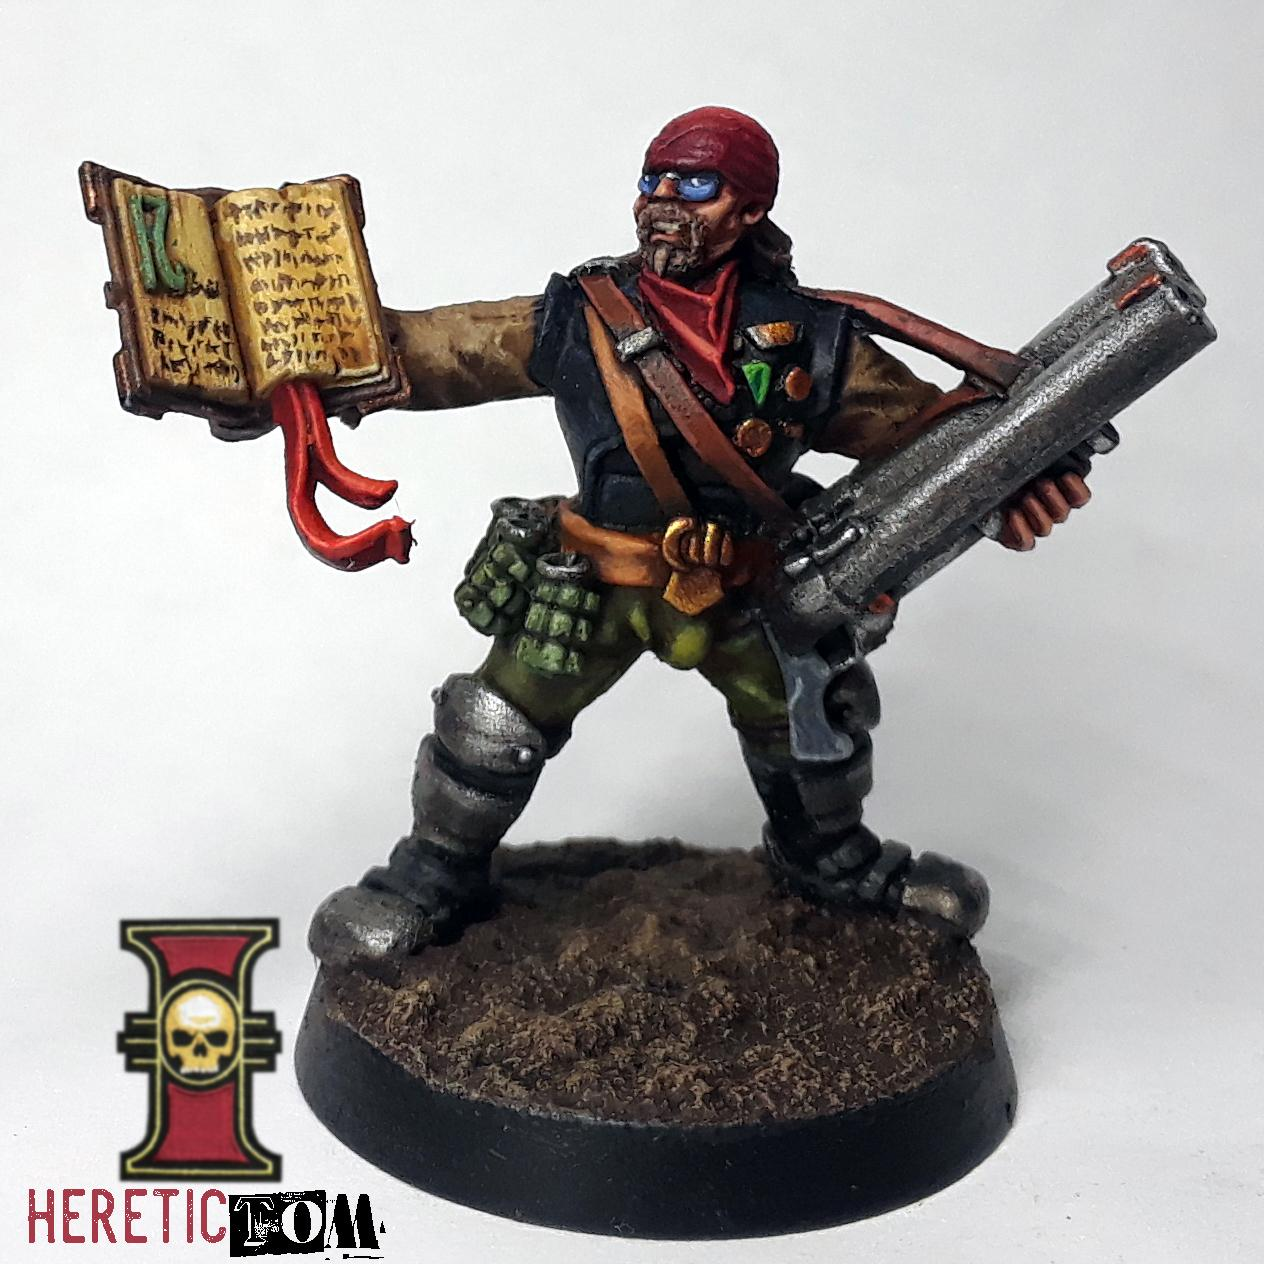 Inquisition, Necromunda, Orlock, Specialist Games, Warhammer 40,000